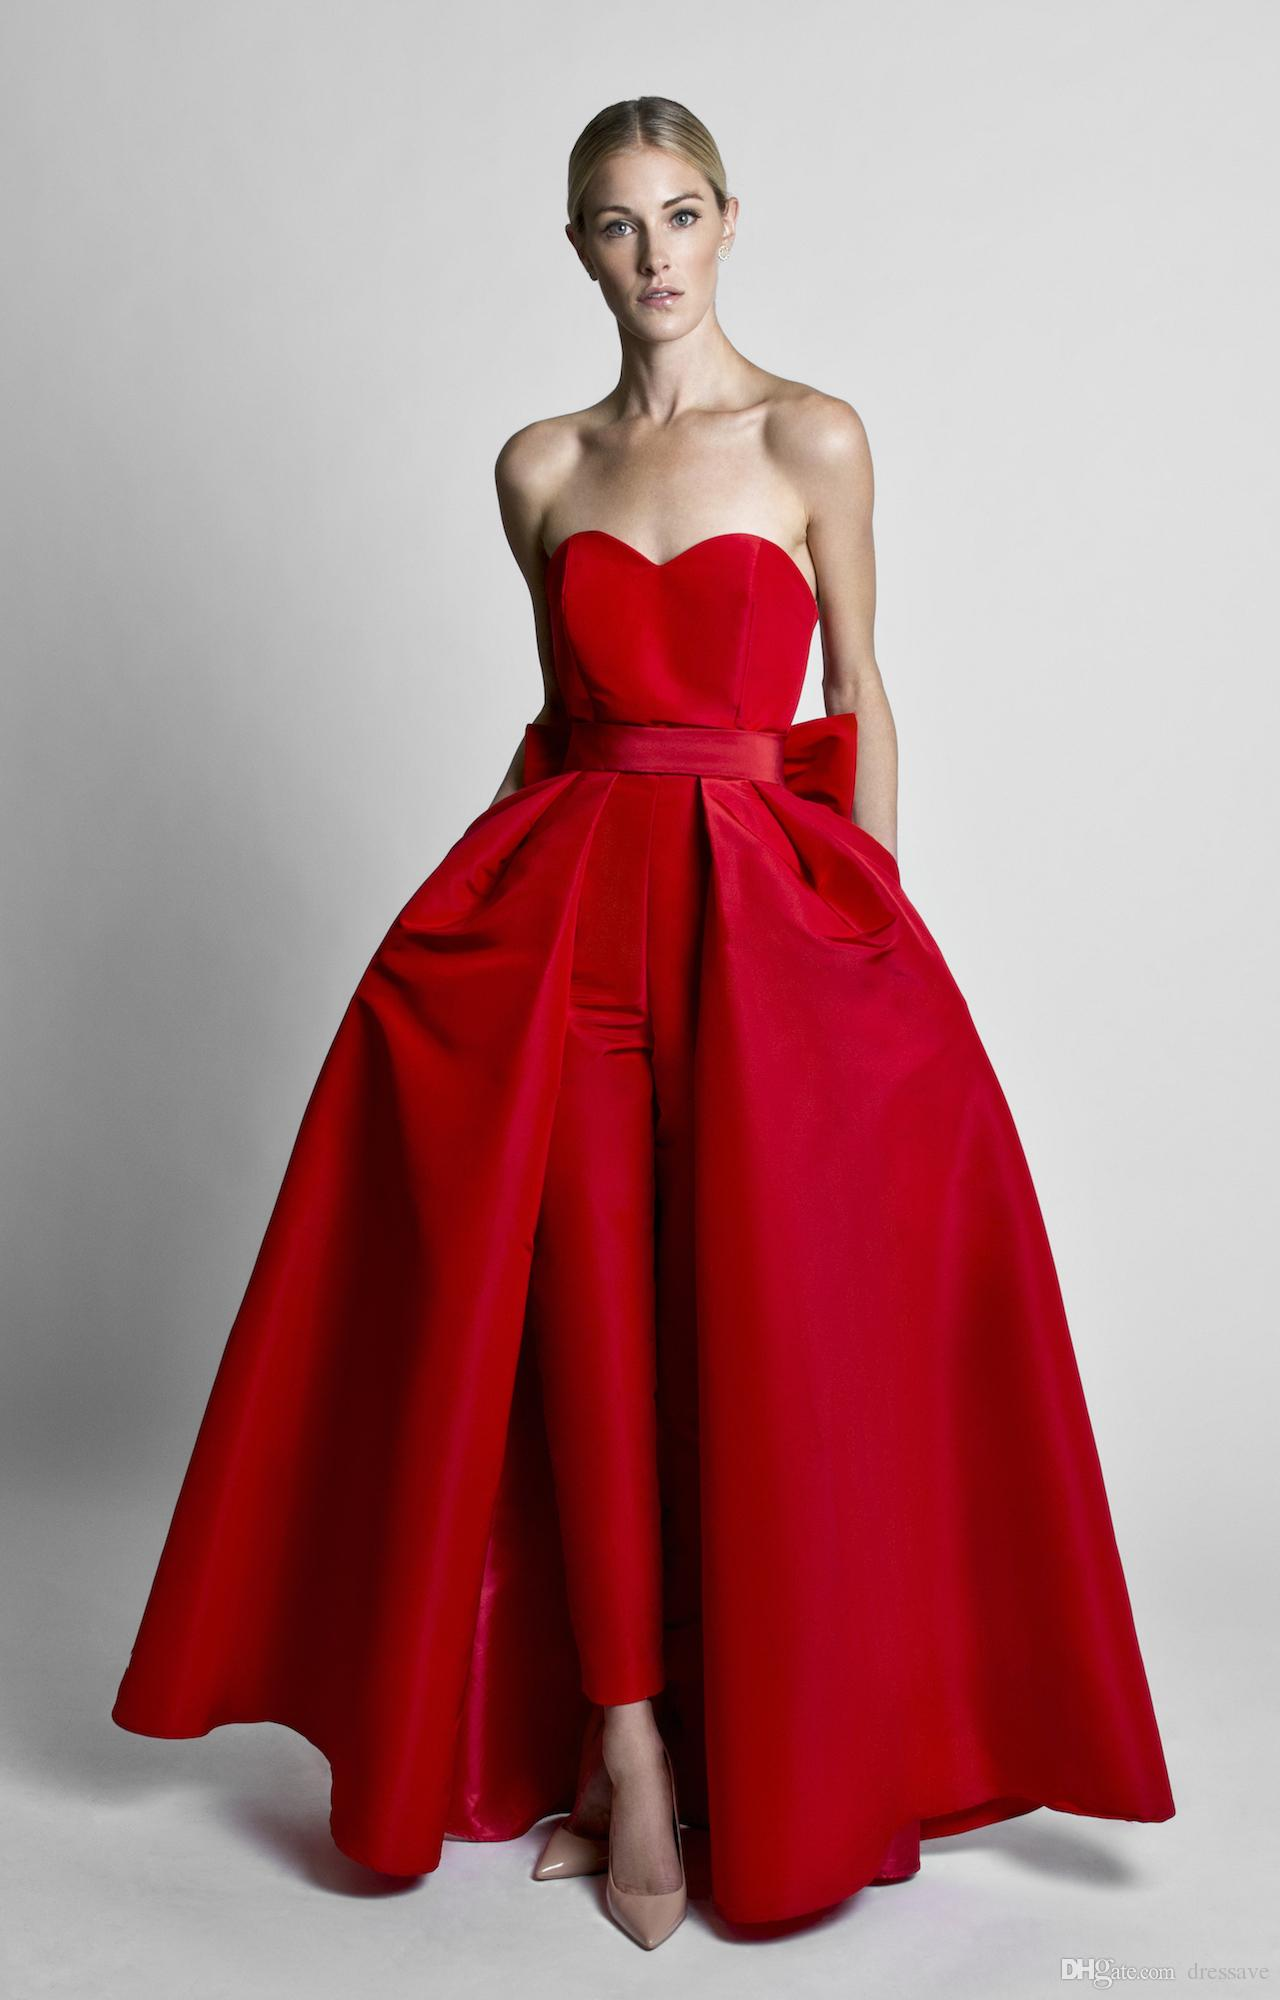 Red Jumpsuits Celebrity Dresses Evening Wear With Detachable Skirt Sweetheart Strapless Satin Guest Dress Prom Party Gowns